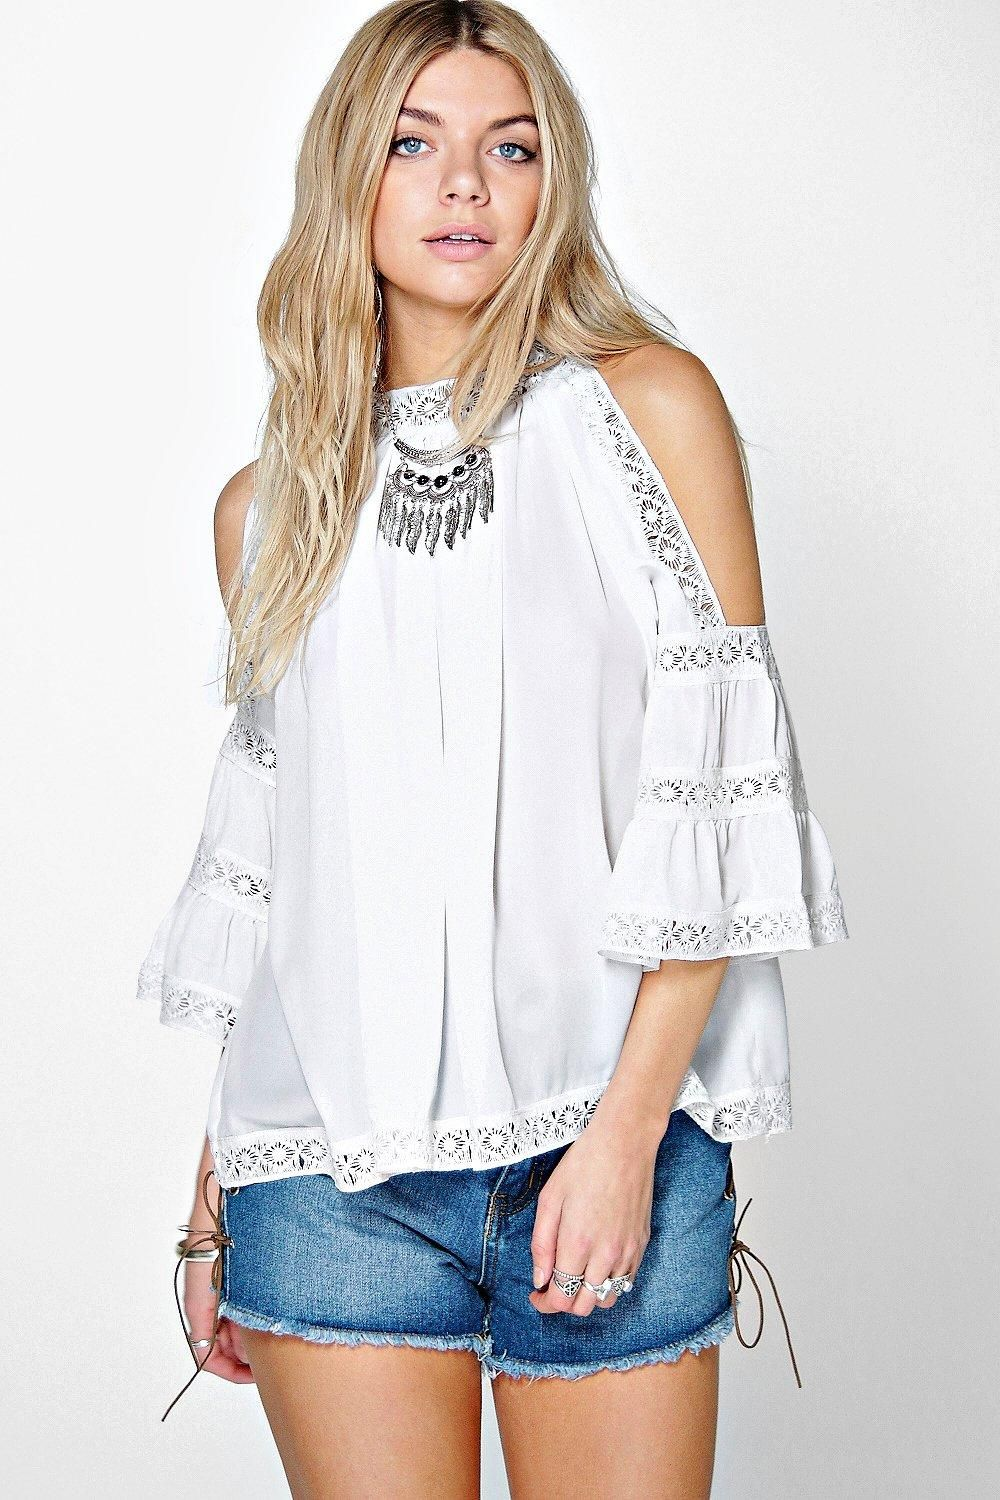 31377a4b1cbbe5 Day tops are a staple separate in every wardrobe Make your top pop this  season with